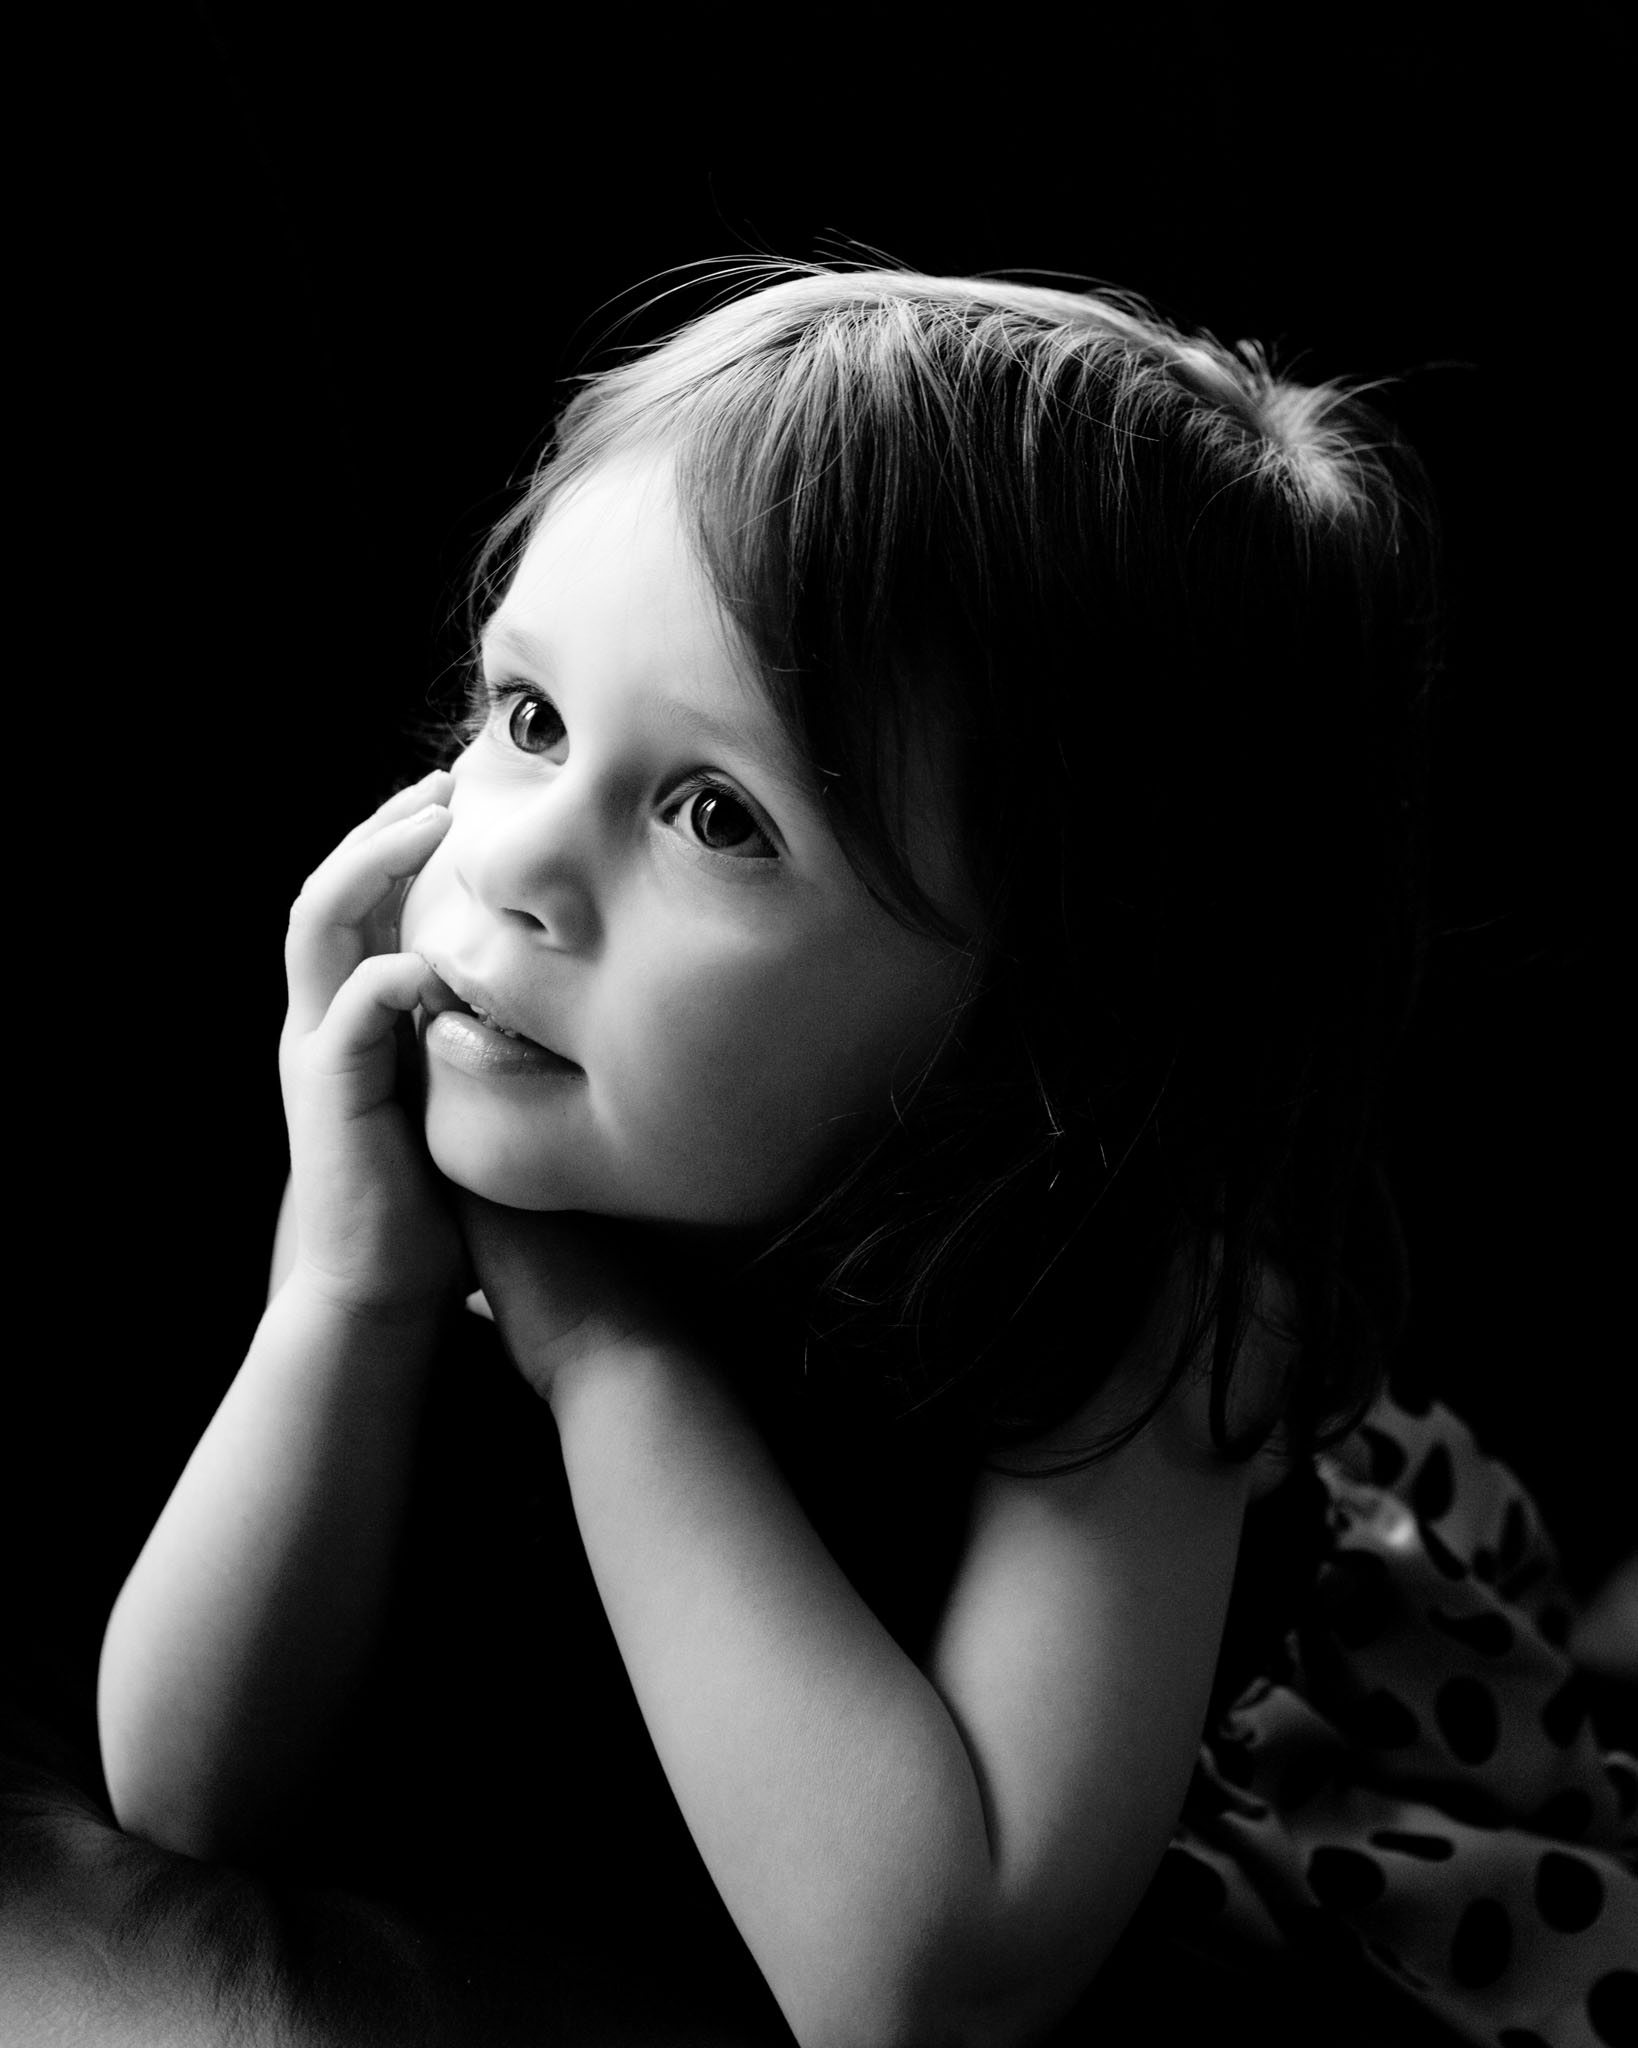 Little girl photographed in window light by cheshire family photographer Andrew Collier